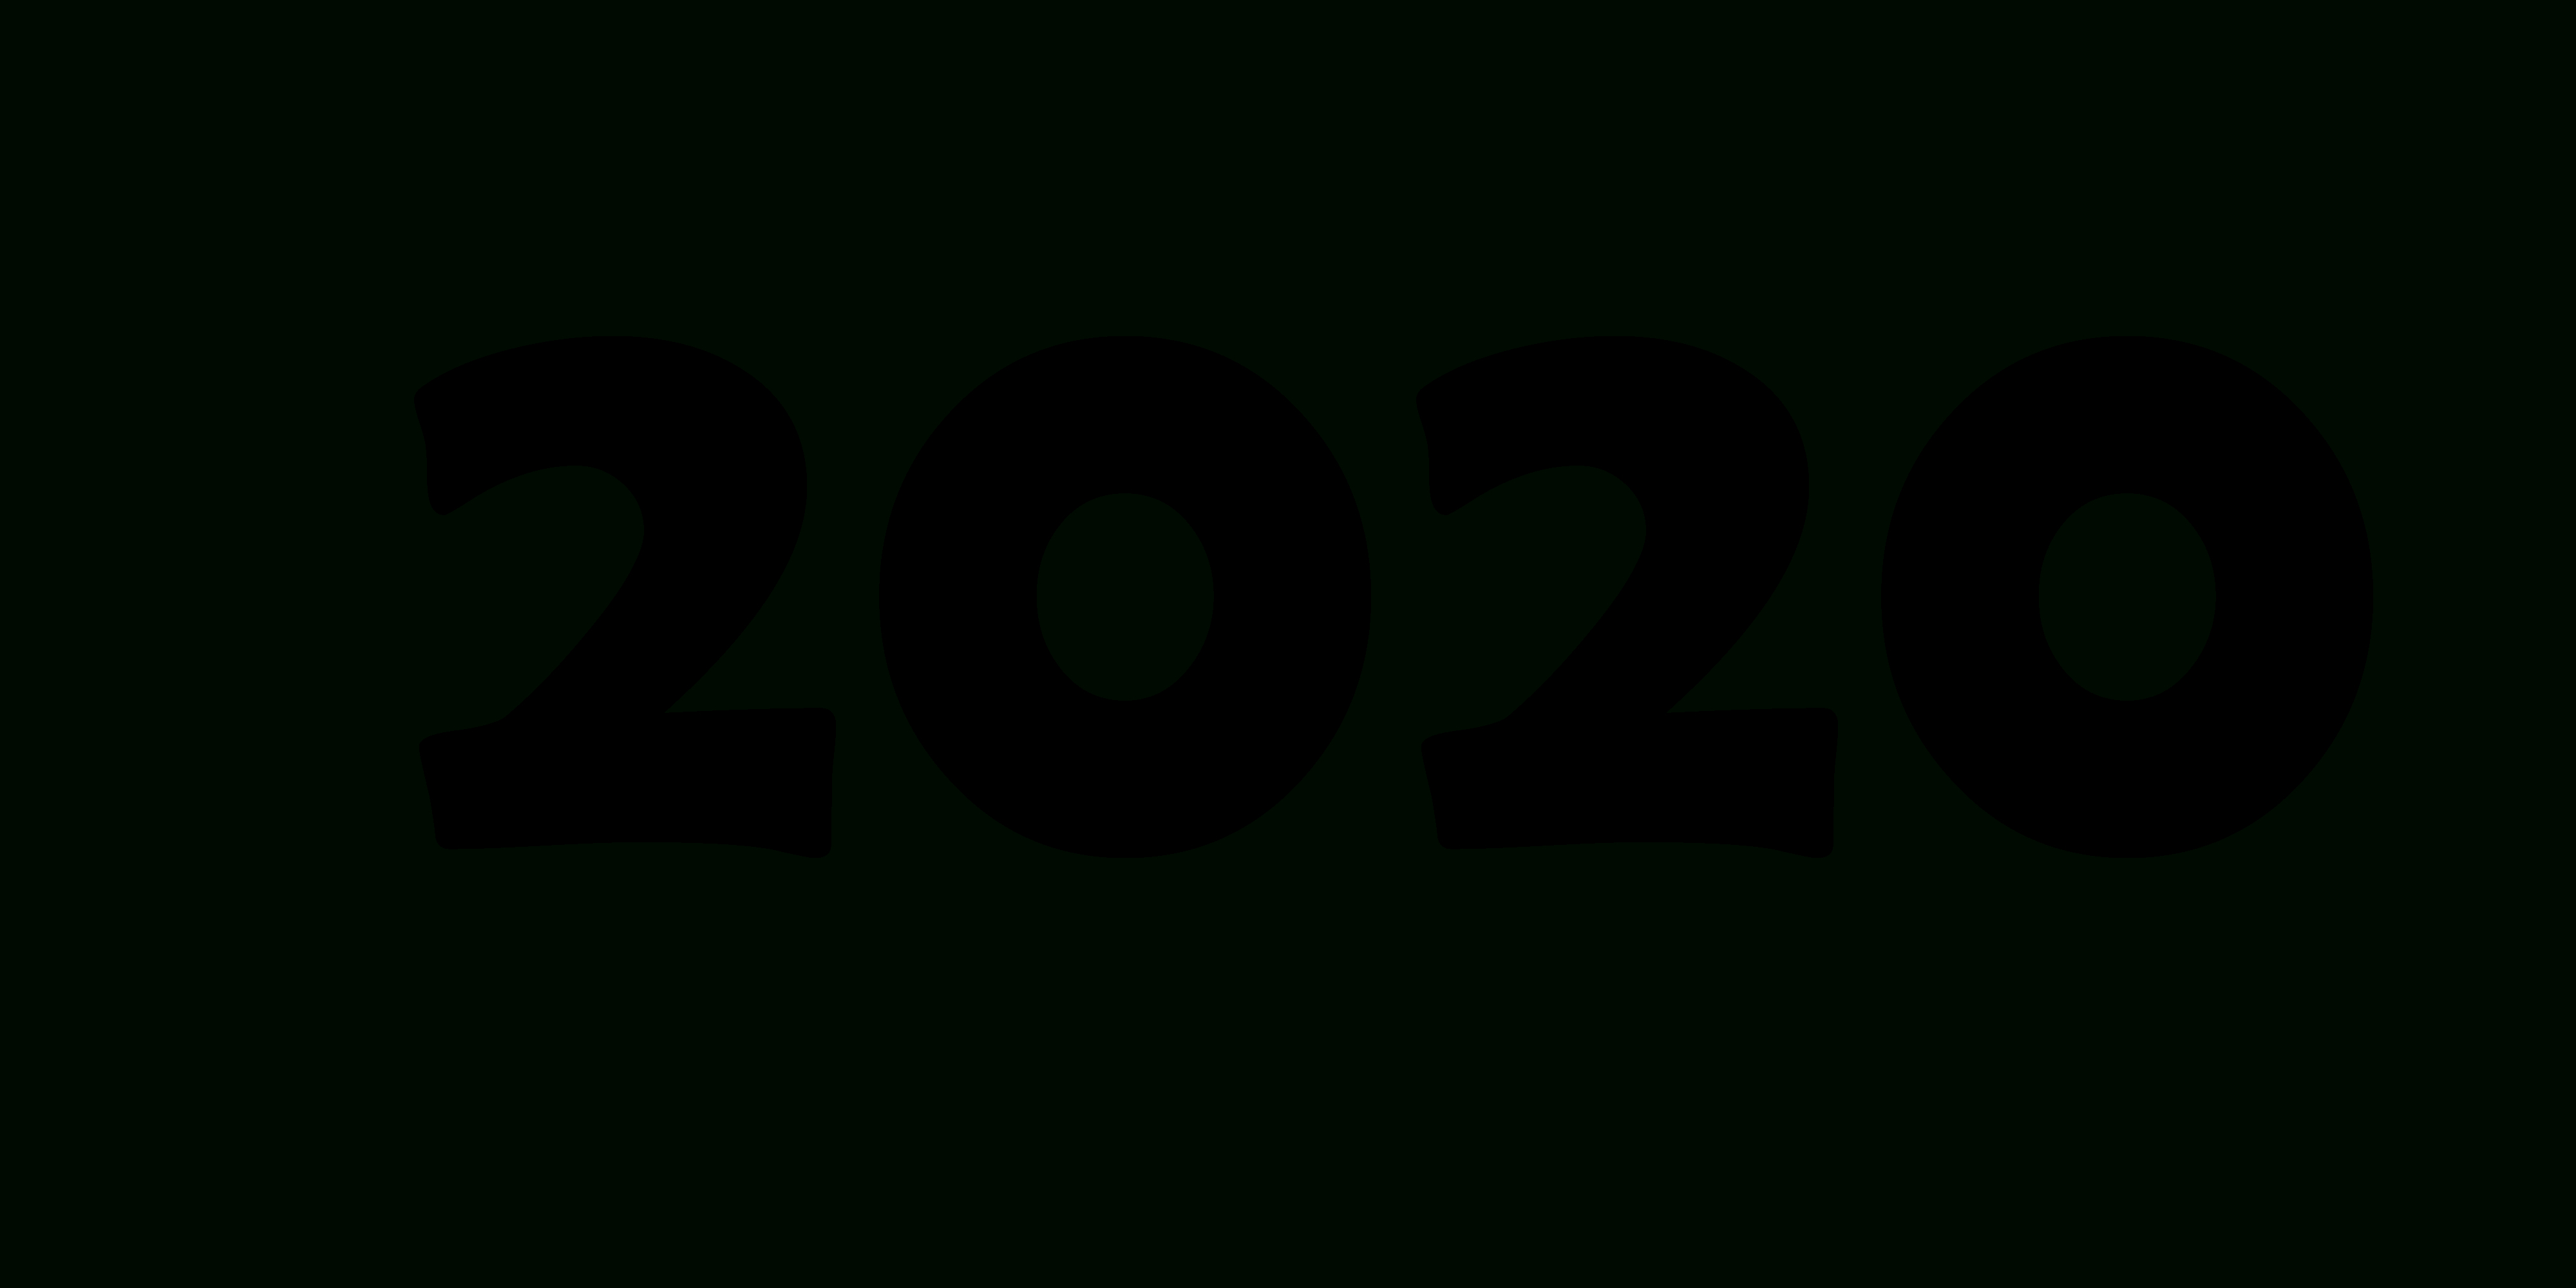 2020 Year Png for 2020 Transparent Background